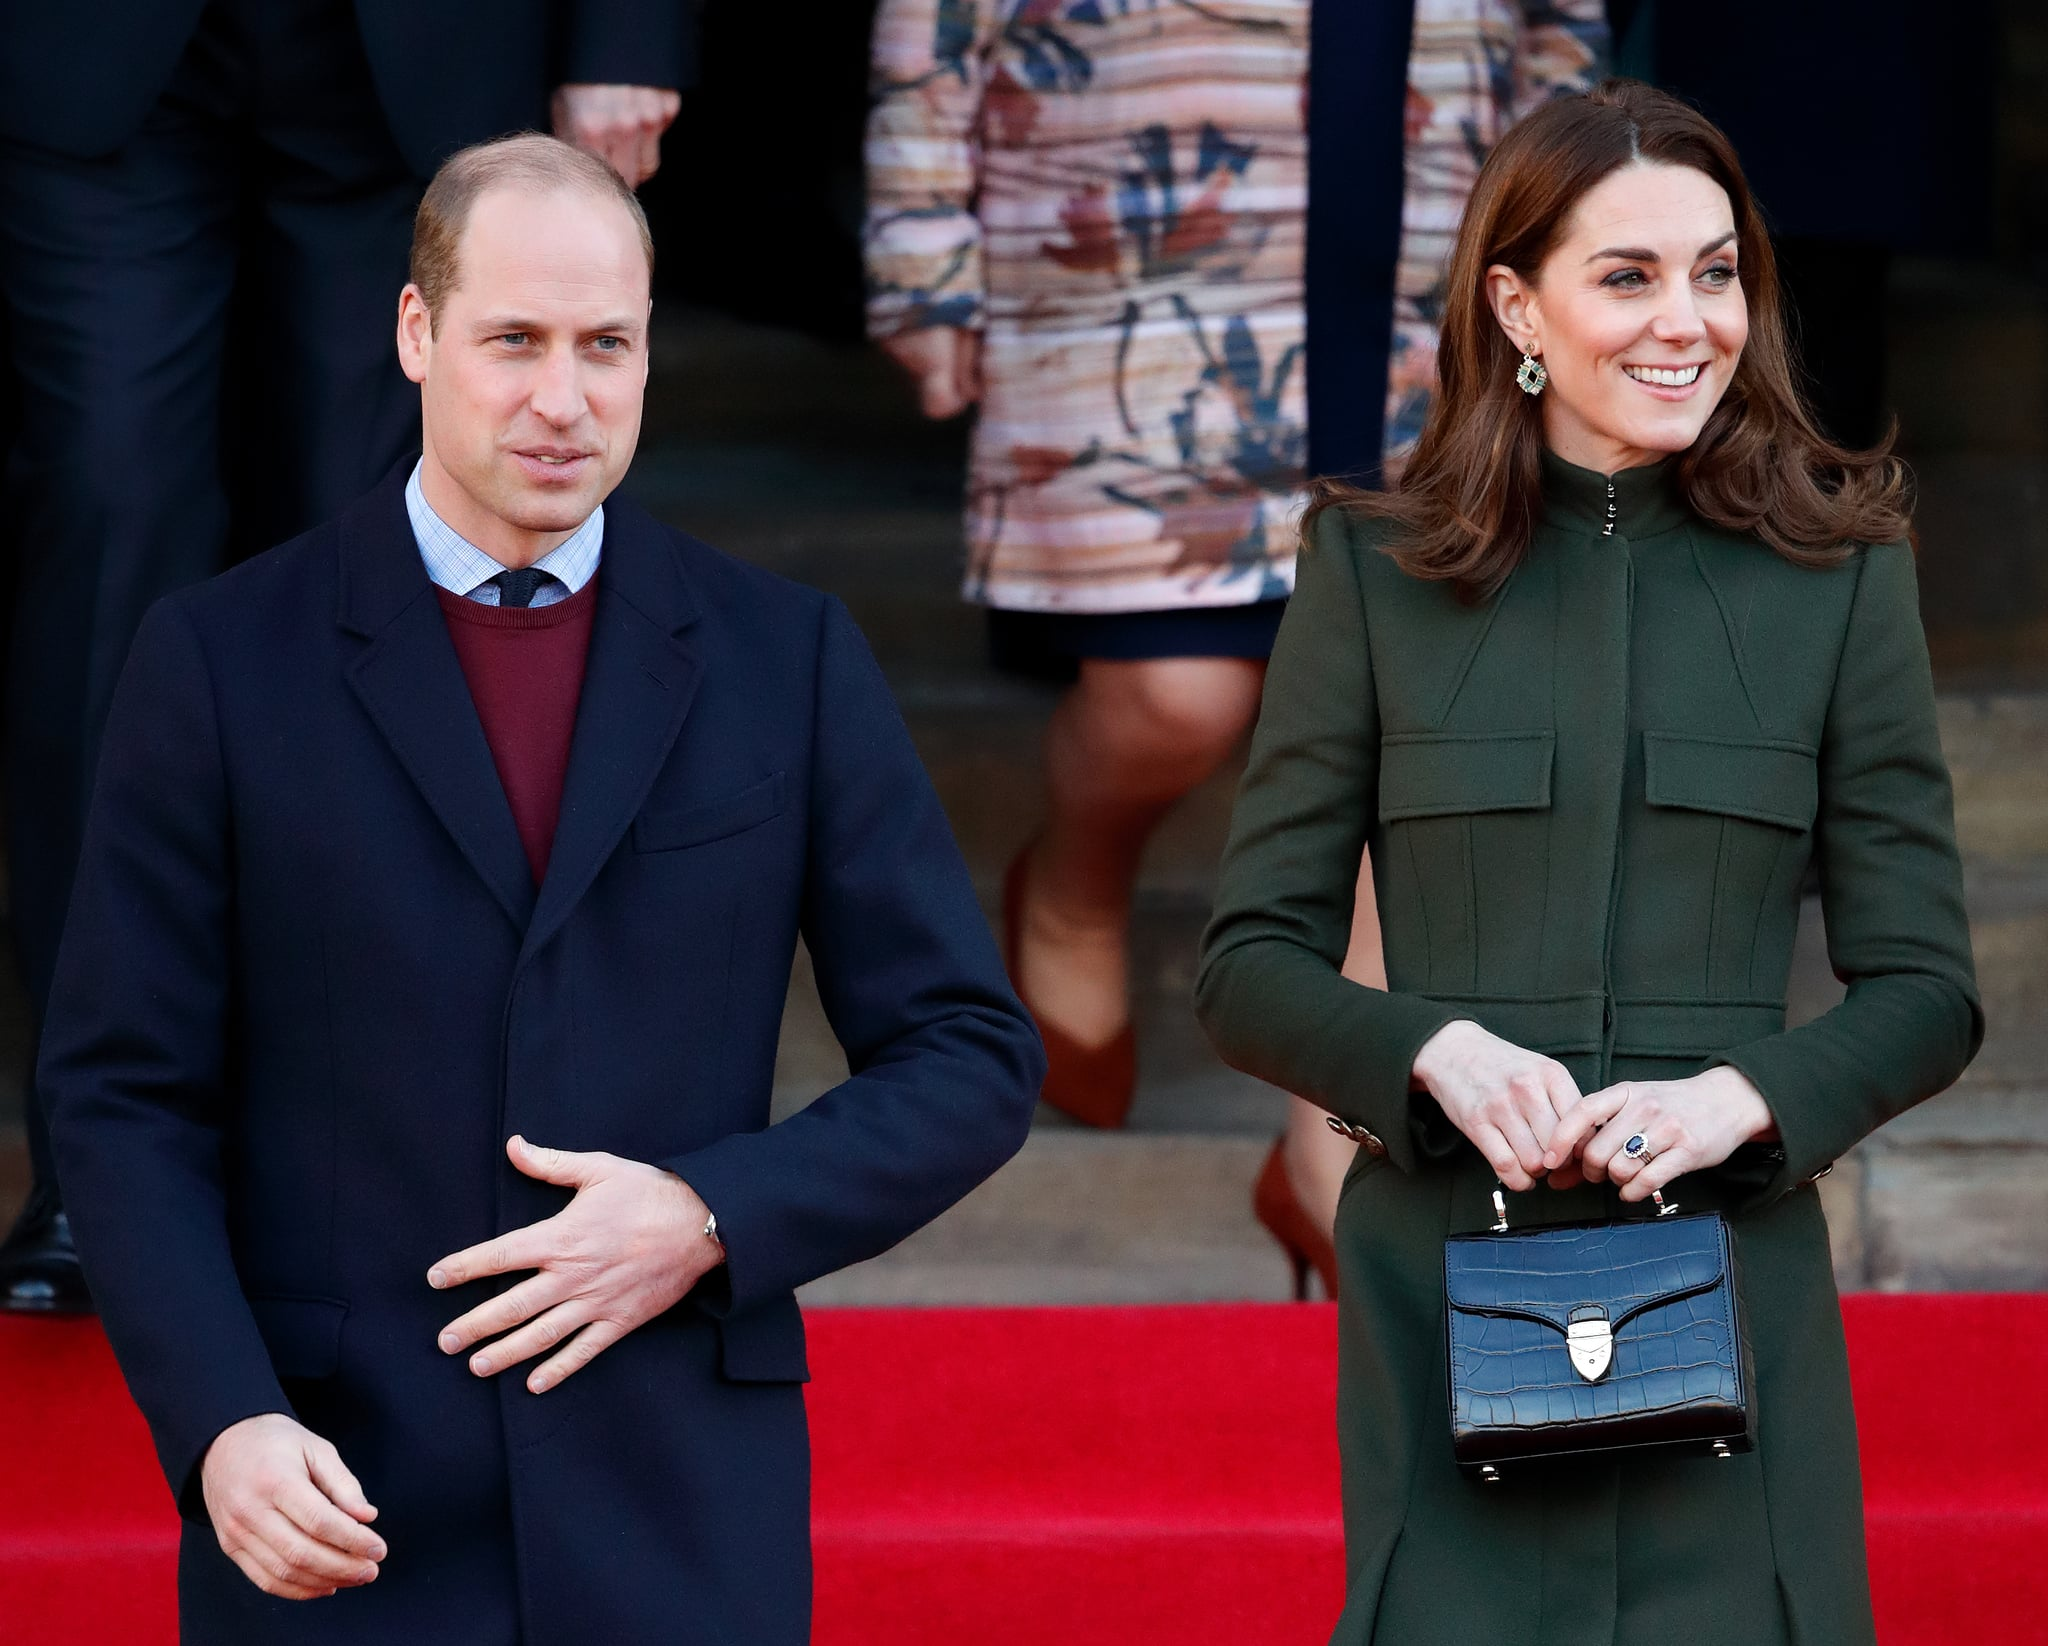 BRADFORD, UNITED KINGDOM - JANUARY 15: (EMBARGOED FOR PUBLICATION IN UK NEWSPAPERS UNTIL 24 HOURS AFTER CREATE DATE AND TIME) Prince William, Duke of Cambridge and Catherine, Duchess of Cambridge depart City Hall in Bradford's Centenary Square before meeting members of the public during a walkabout on January 15, 2020 in Bradford, England. (Photo by Max Mumby/Indigo/Getty Images)